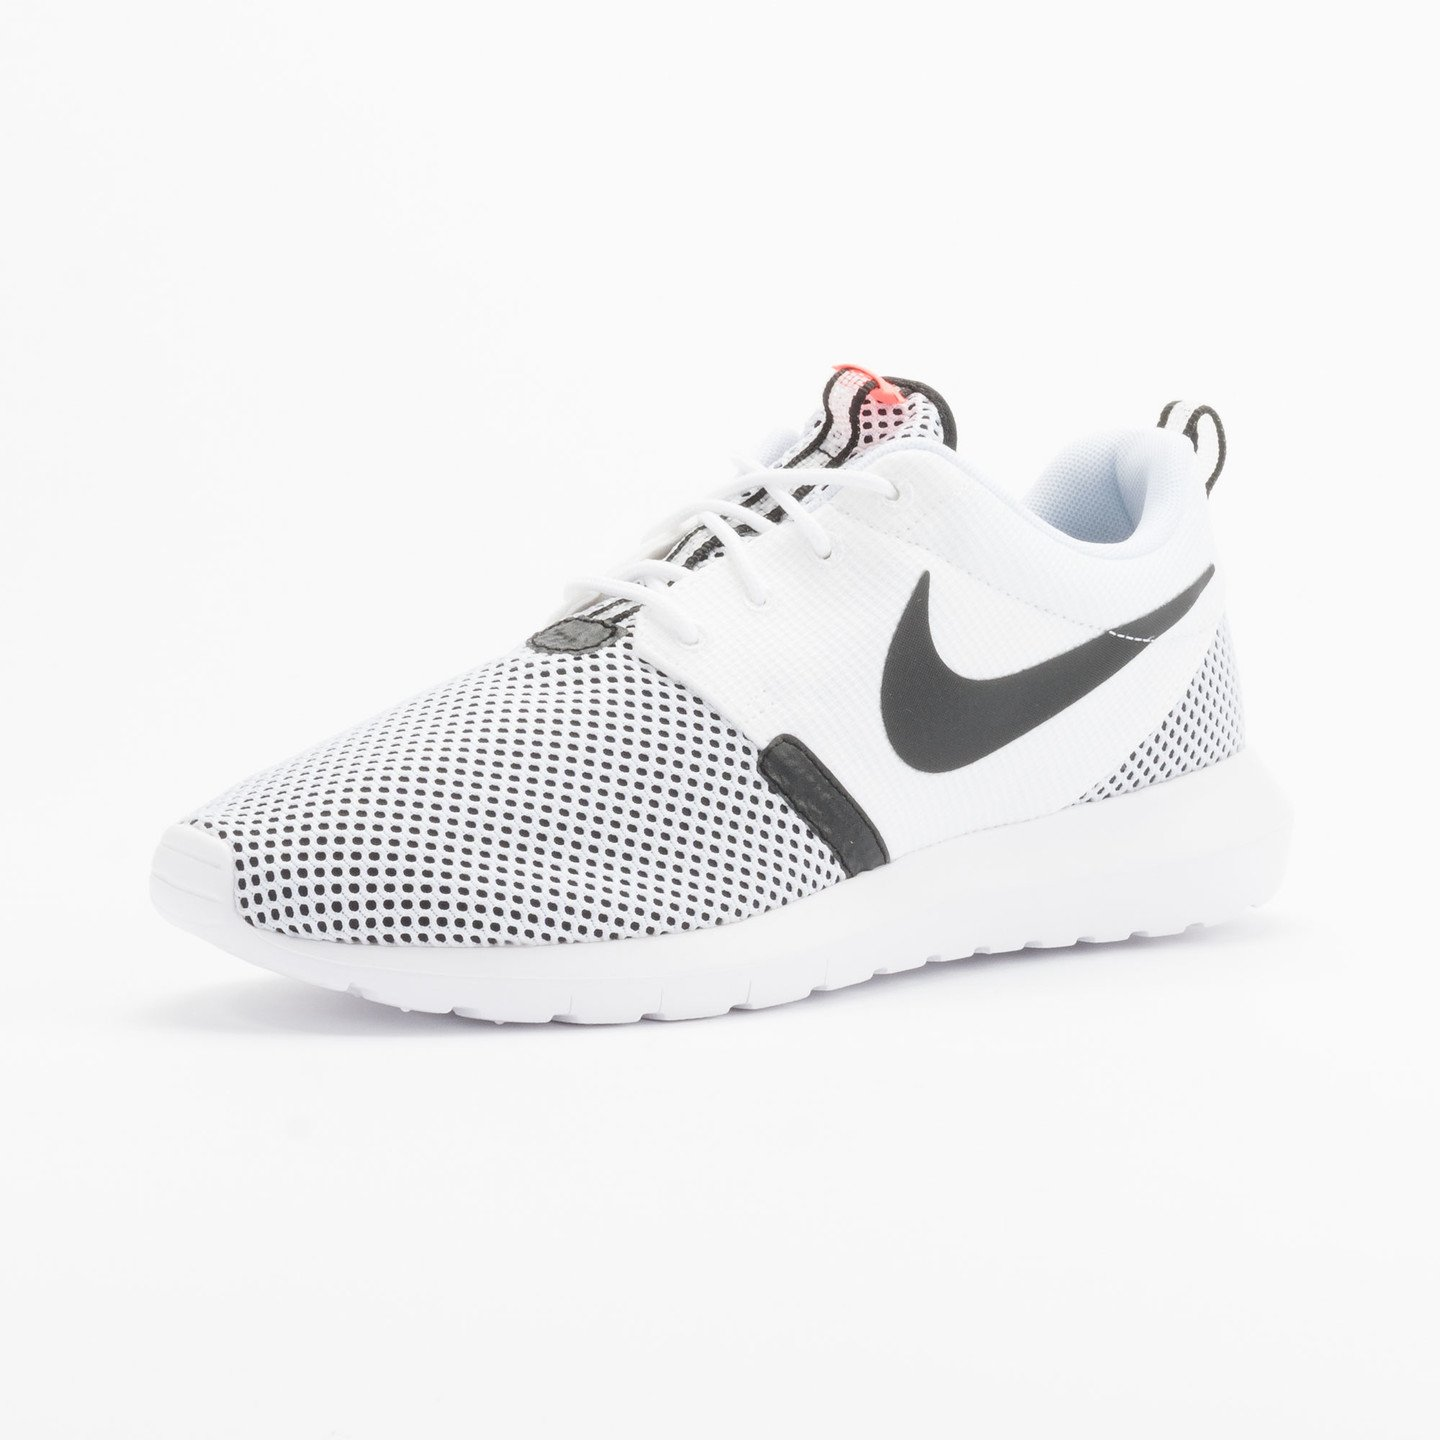 Nike Rosherun NM BR White/White-Black-Hot Lava 644425-100-42